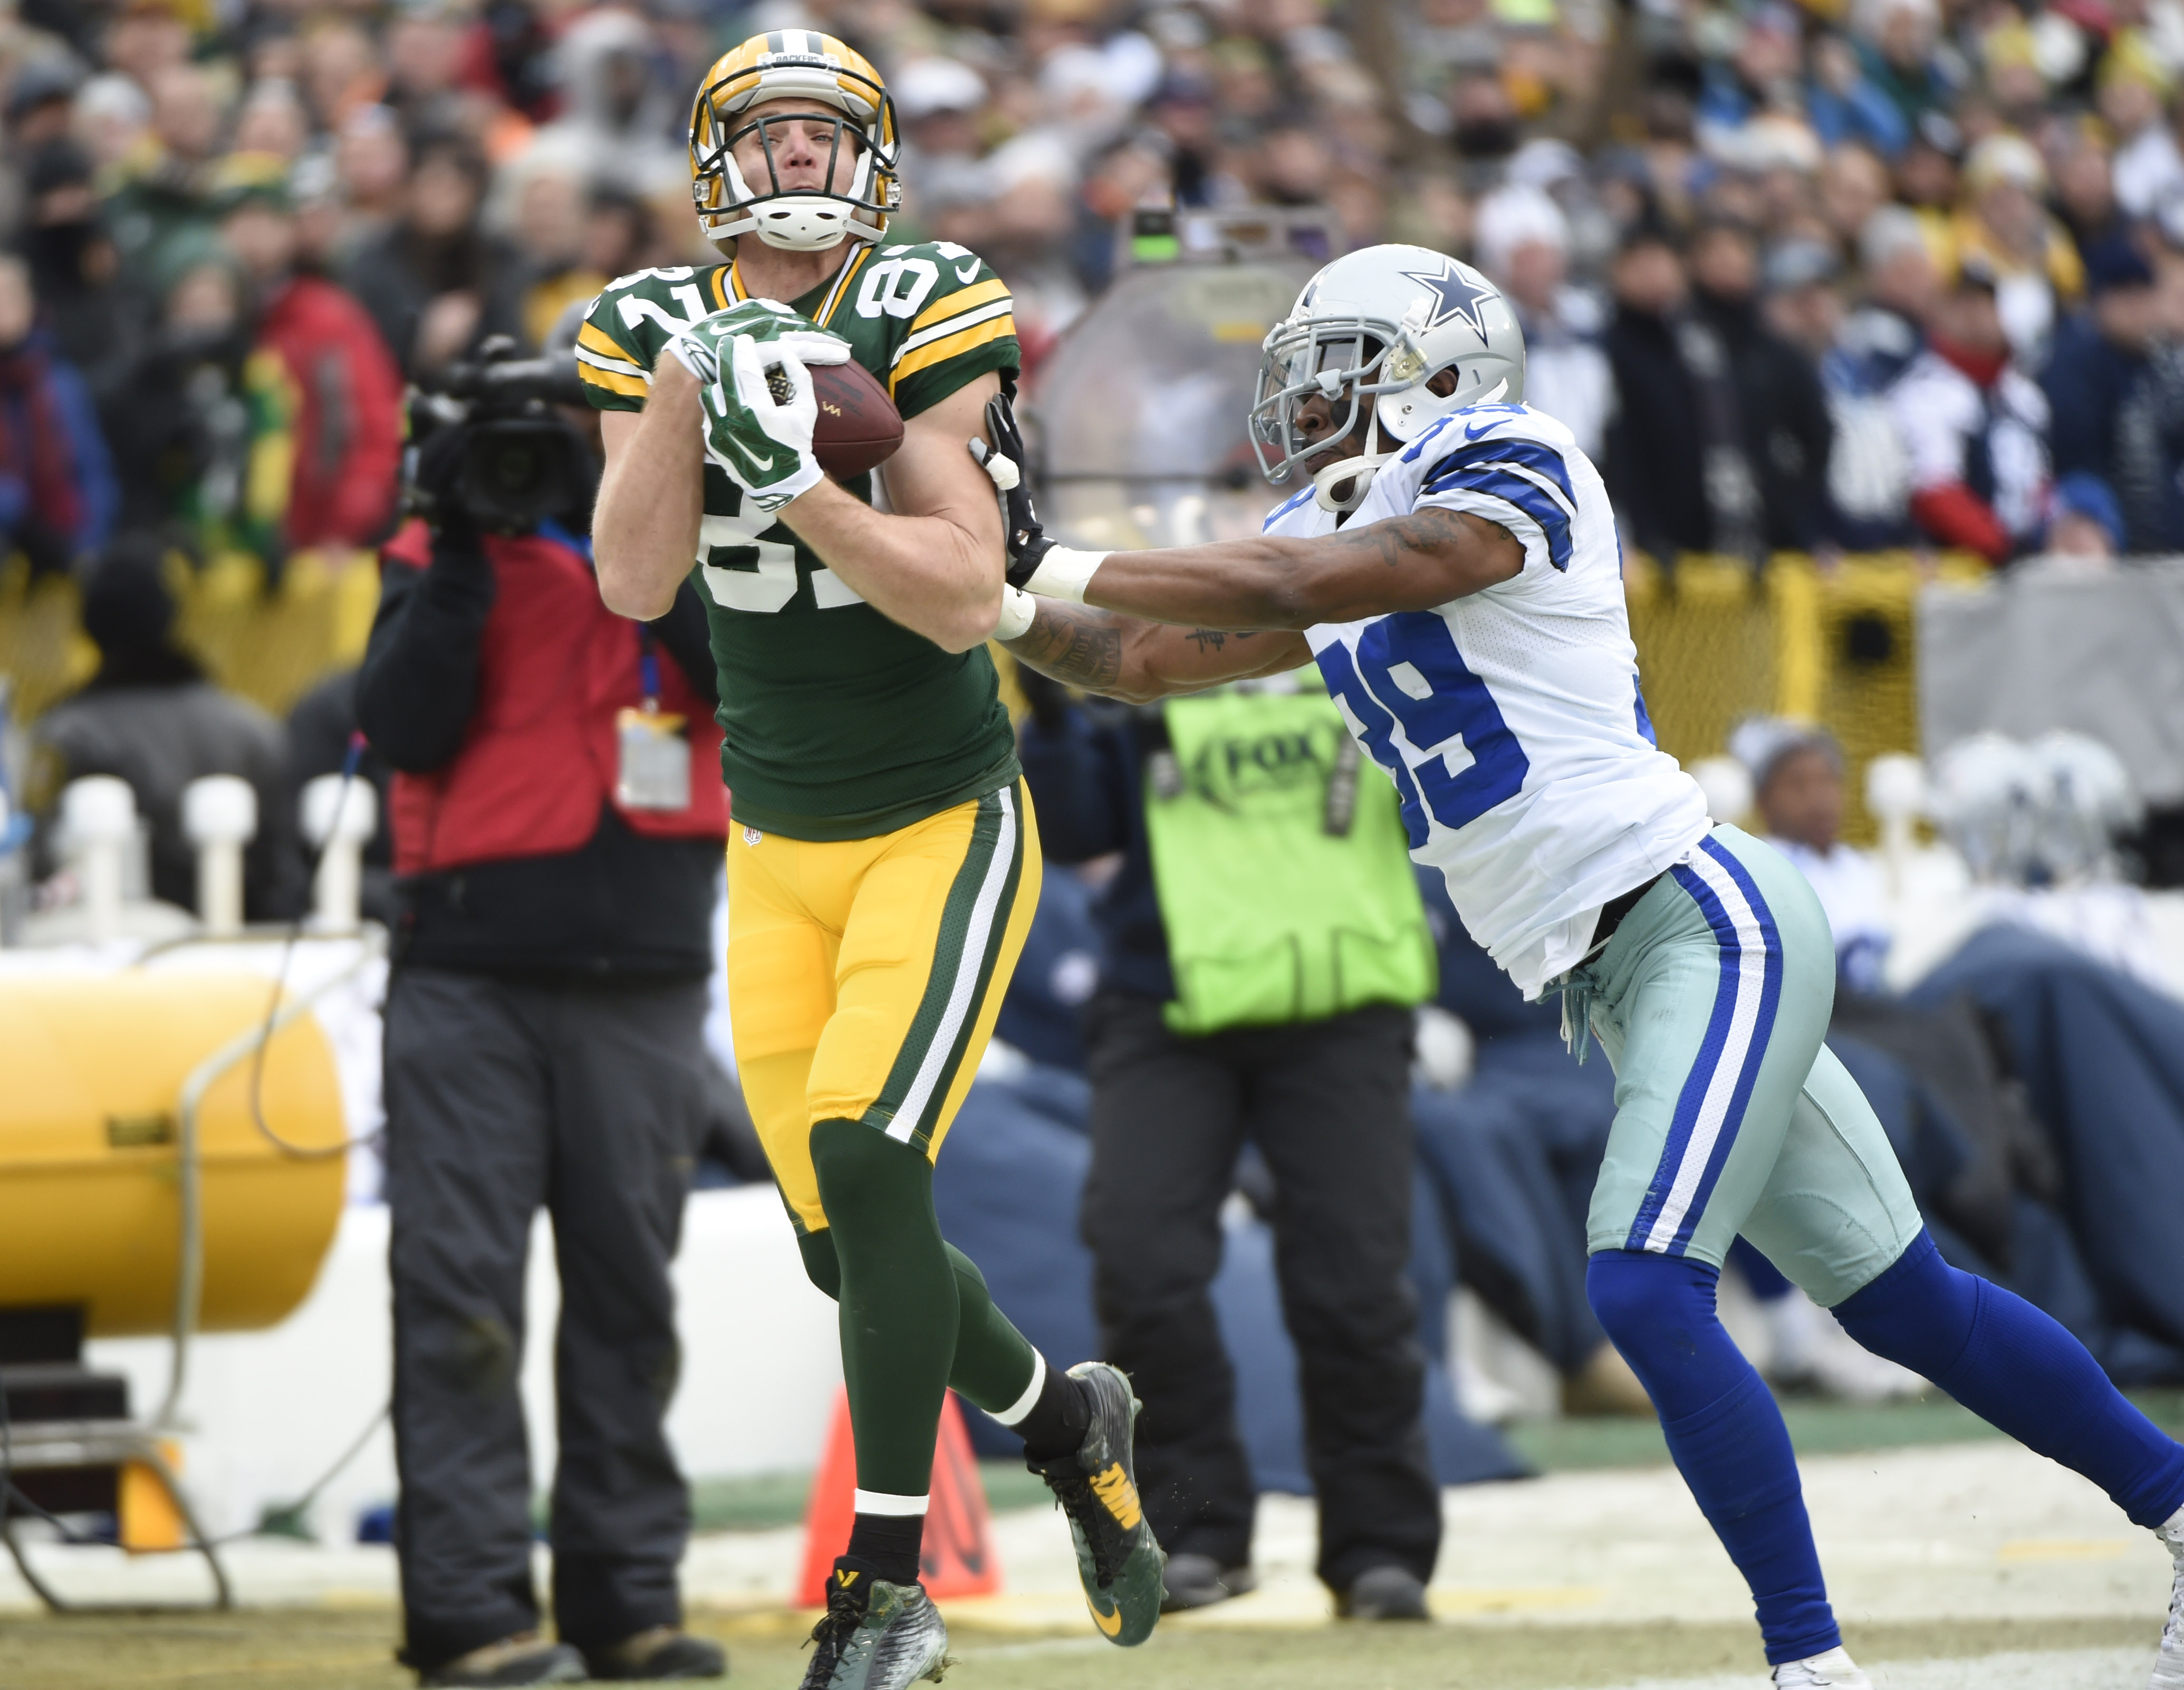 Arthur Brown didn't play, so highlighting Jordy Nelson this week was a no-brainer.